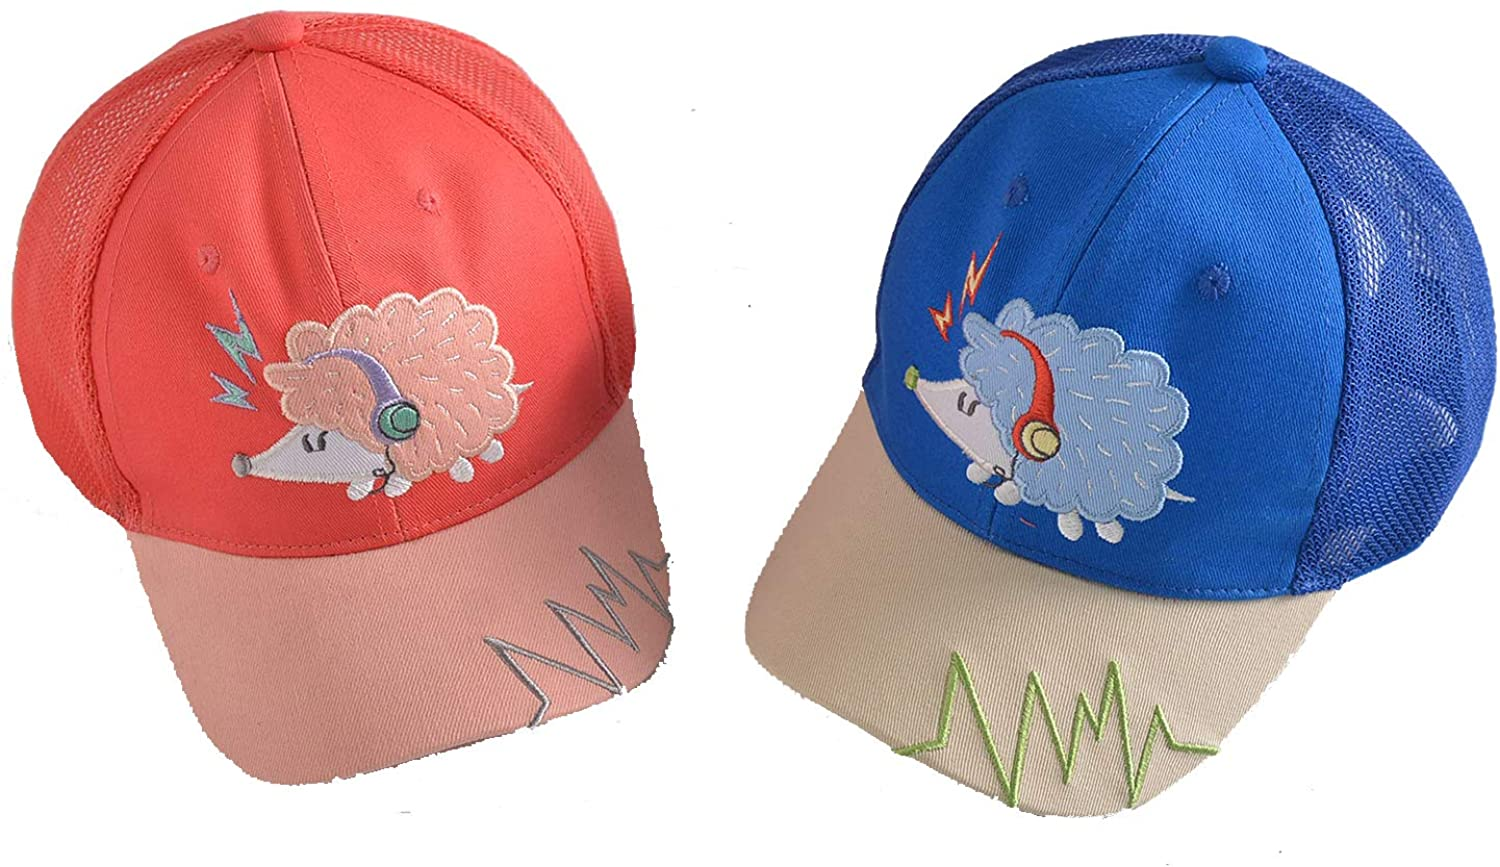 Children's Little Hedgehog Embroidery Hat Cartoon Breathable Fashion Cap Baseball Cap